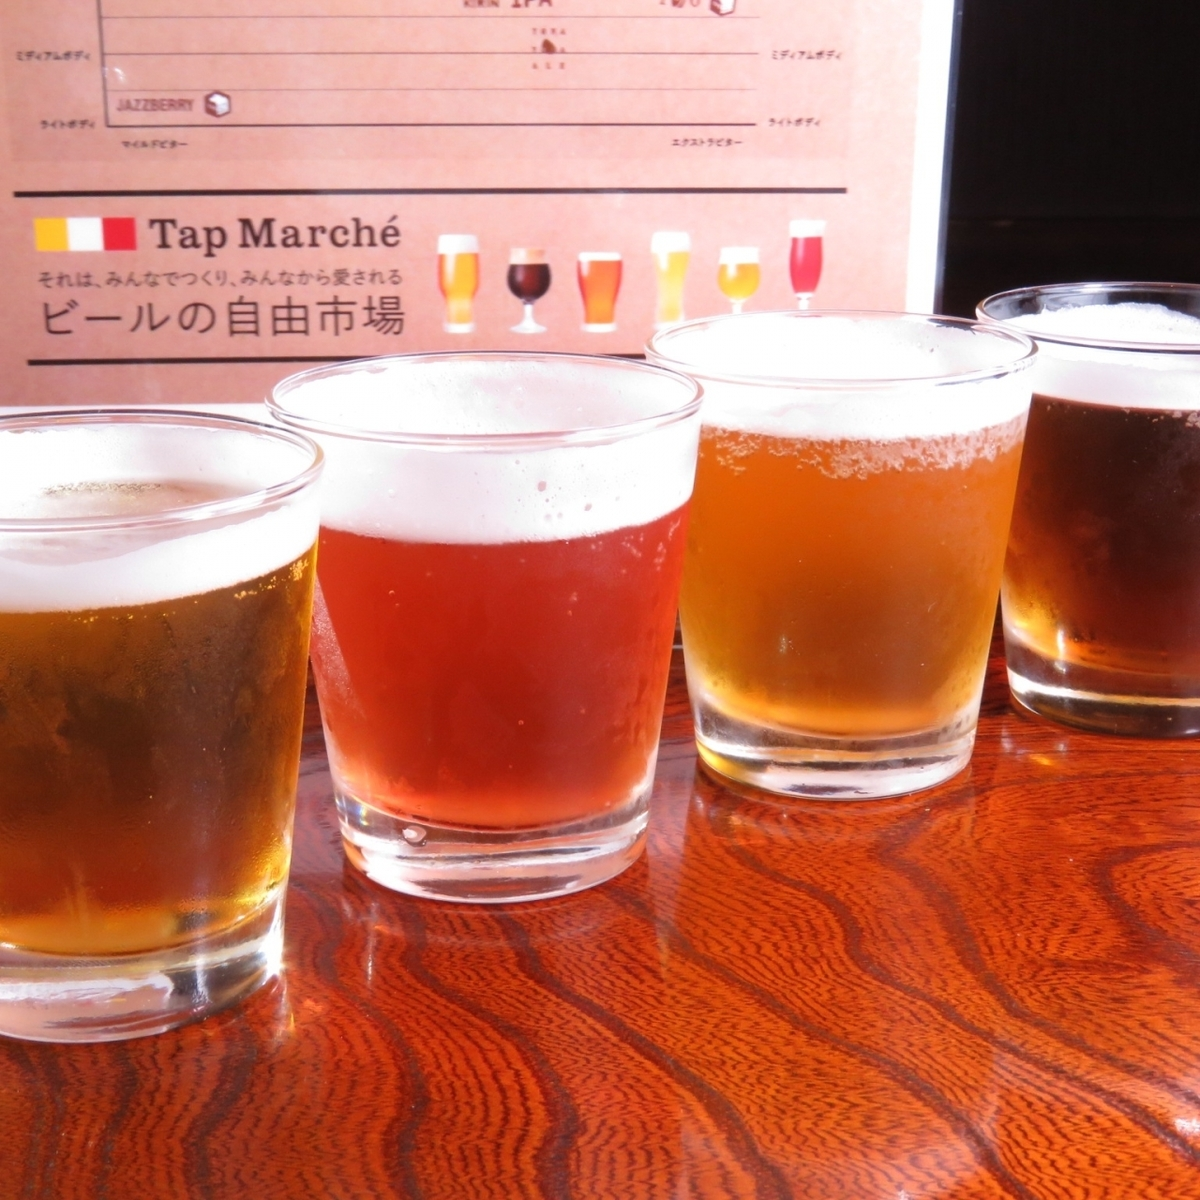 Tap Marche appeared ♪ drink compare the topical craft beer ♪